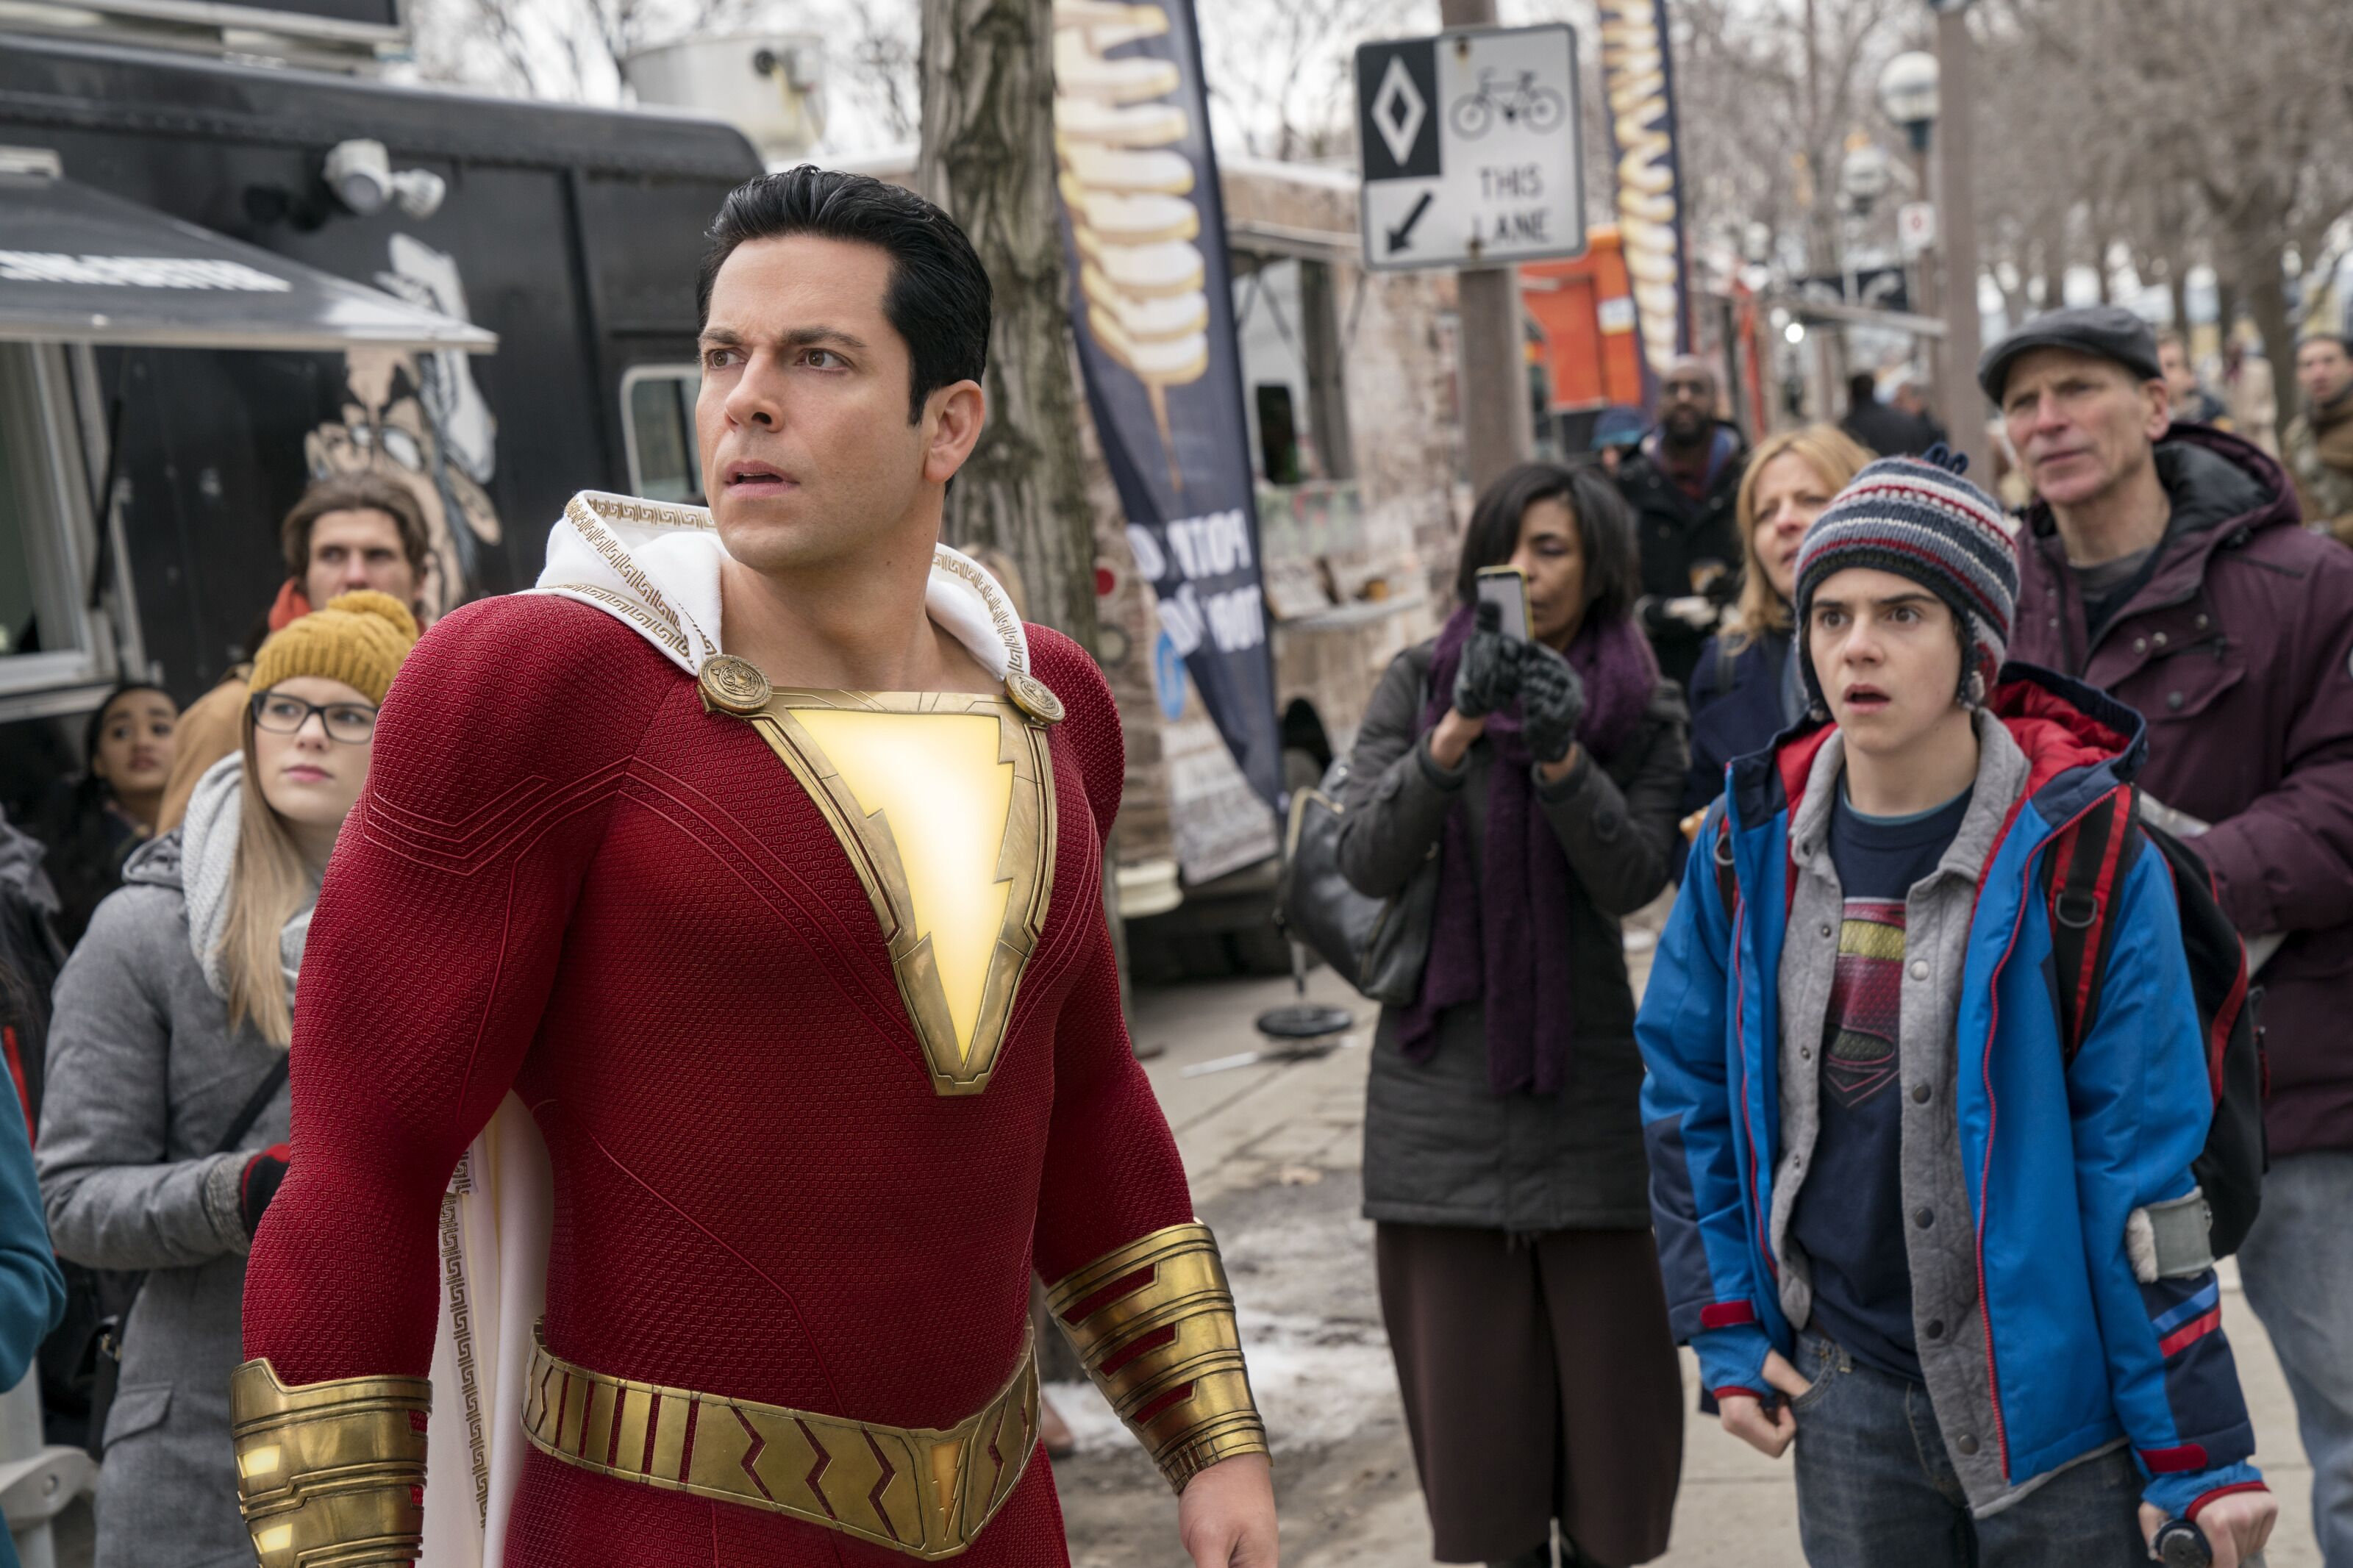 Fan Expo Dallas: Zachary Levi discusses playing a superhero in Shazam!